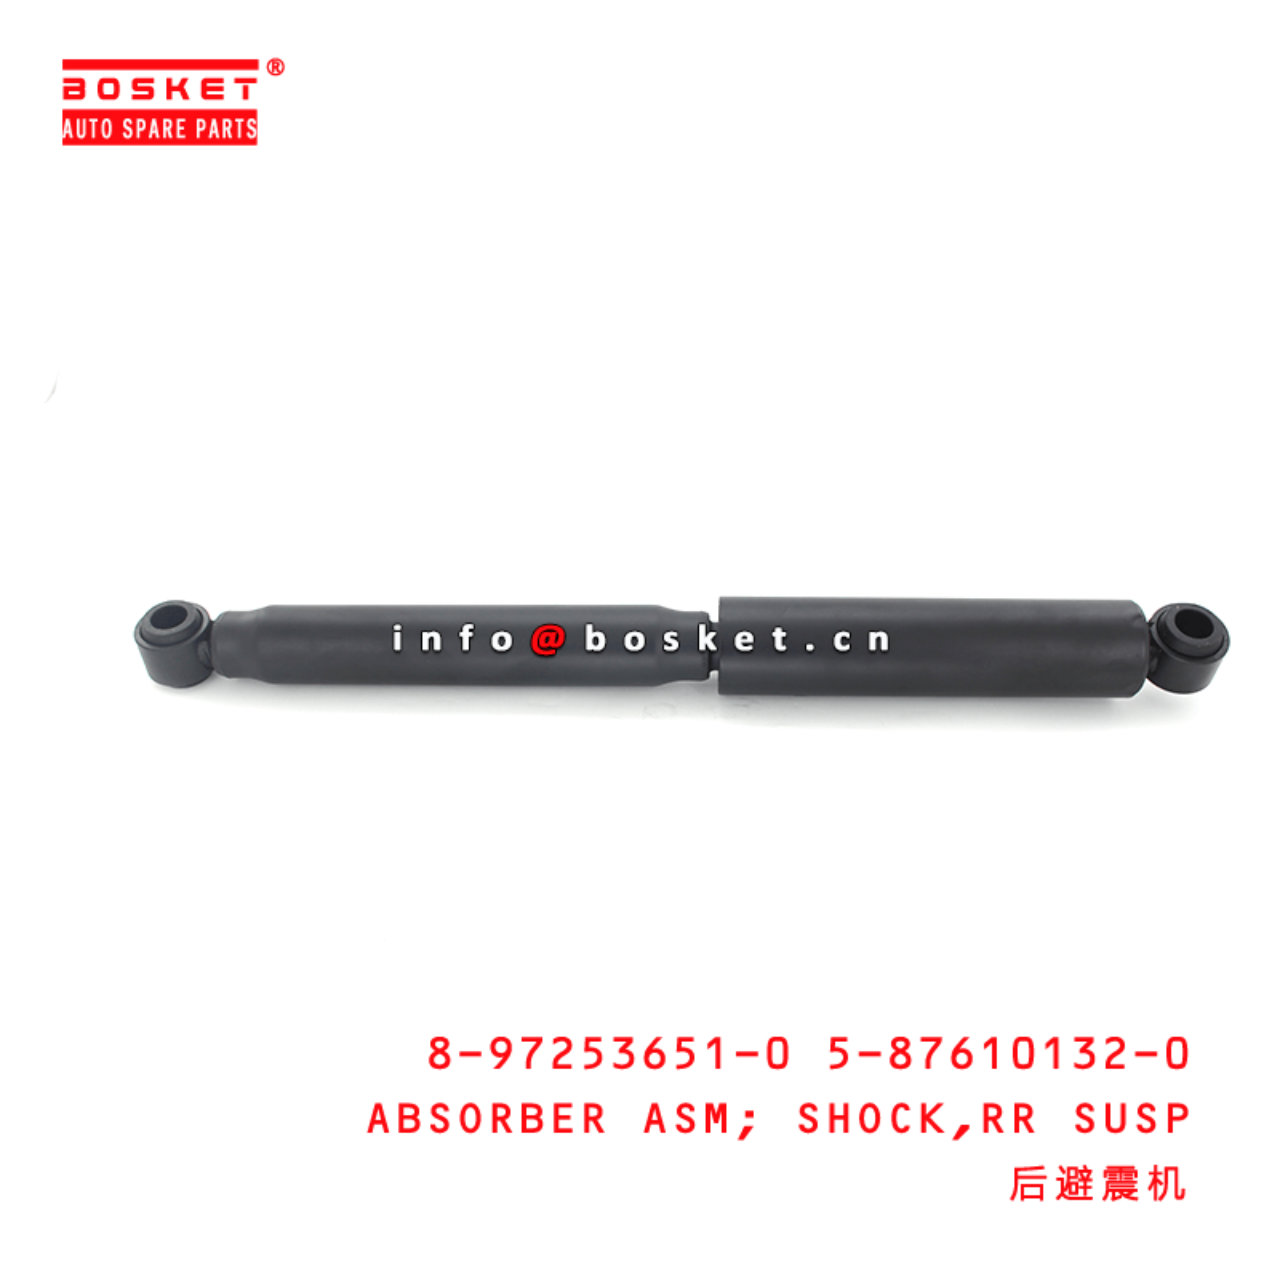 8-97253651-0 5-87610132-0 Suspension Rear Shock Absorber Assembly 8972536510 5876101320 Suitable for